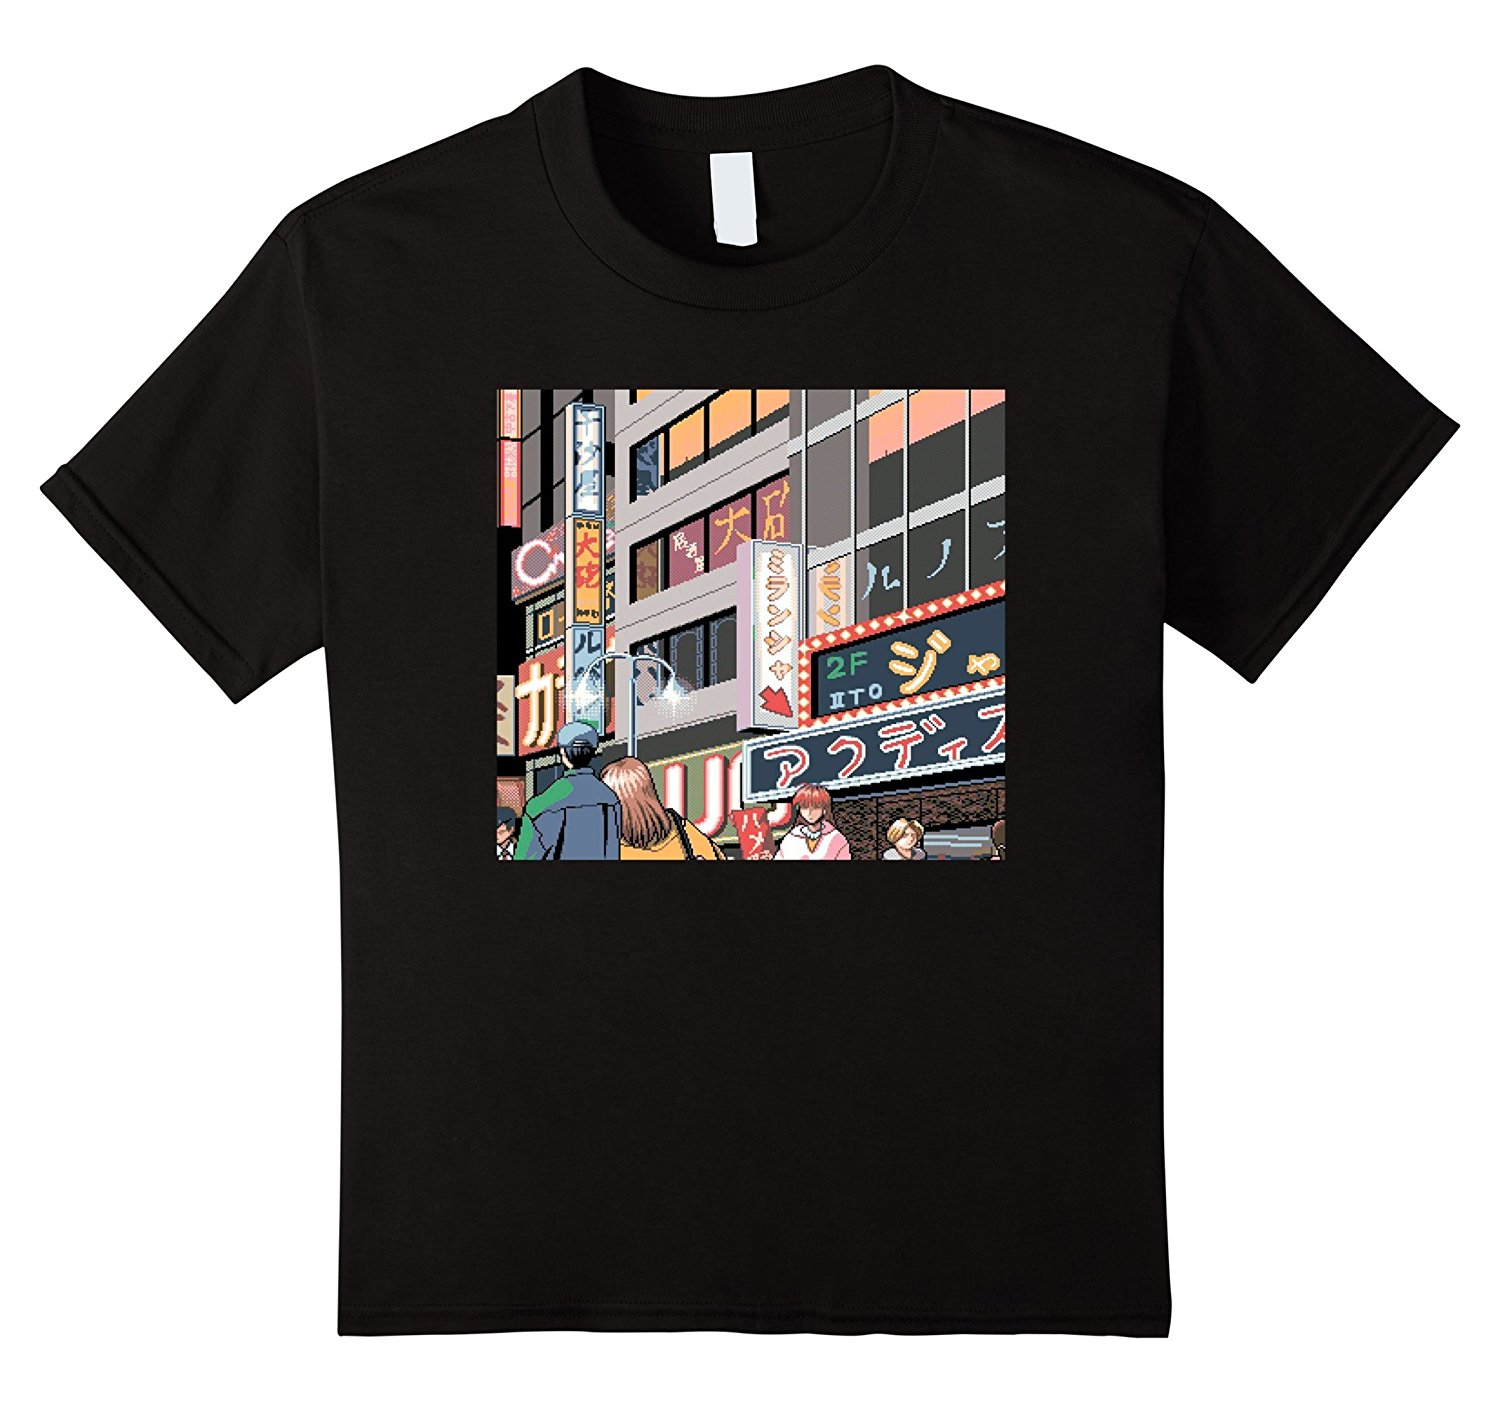 Neon Night Tokyo Japan Neon Signs Anime 8-Bit City T-Shirt ...